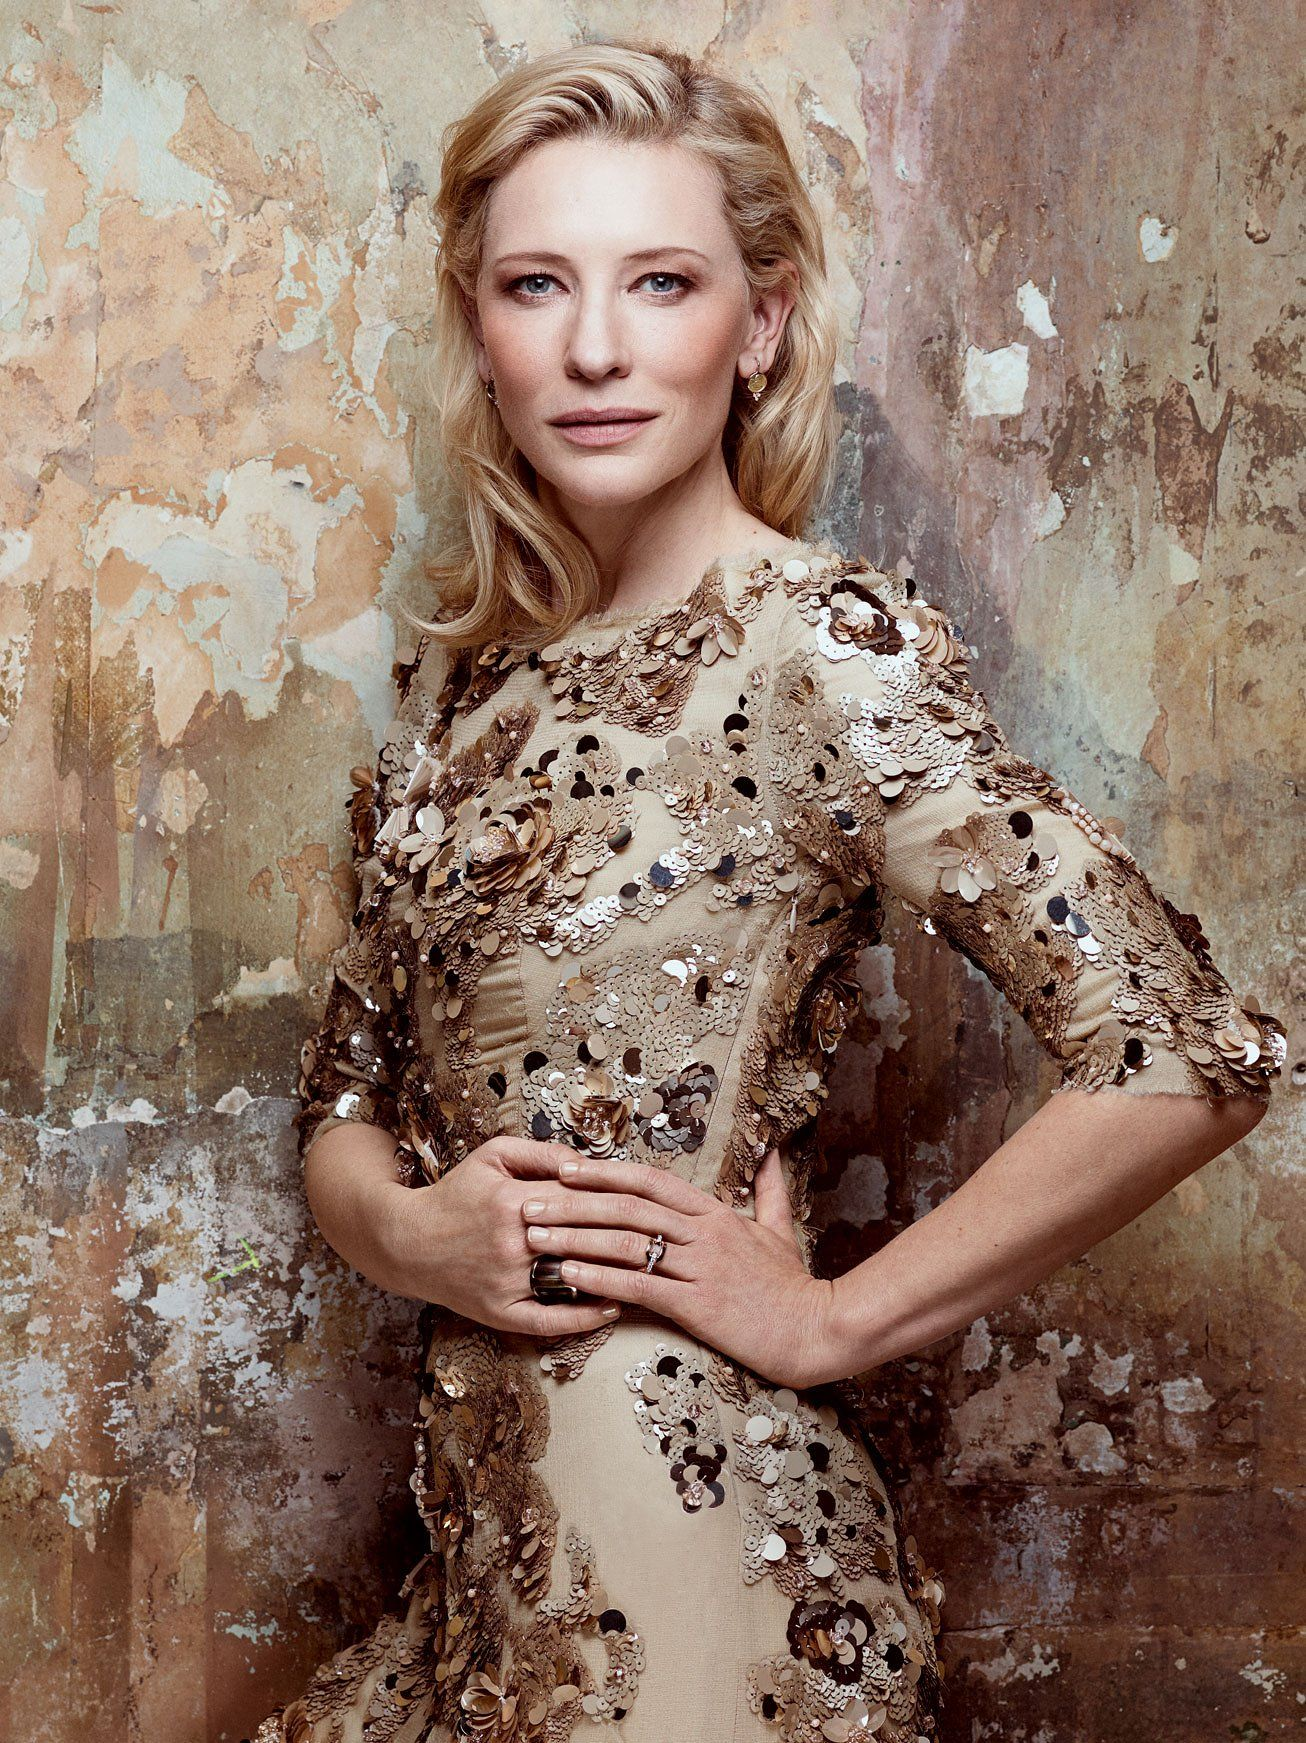 Cate Blanchett List of Movies and TV Shows | TV Guide